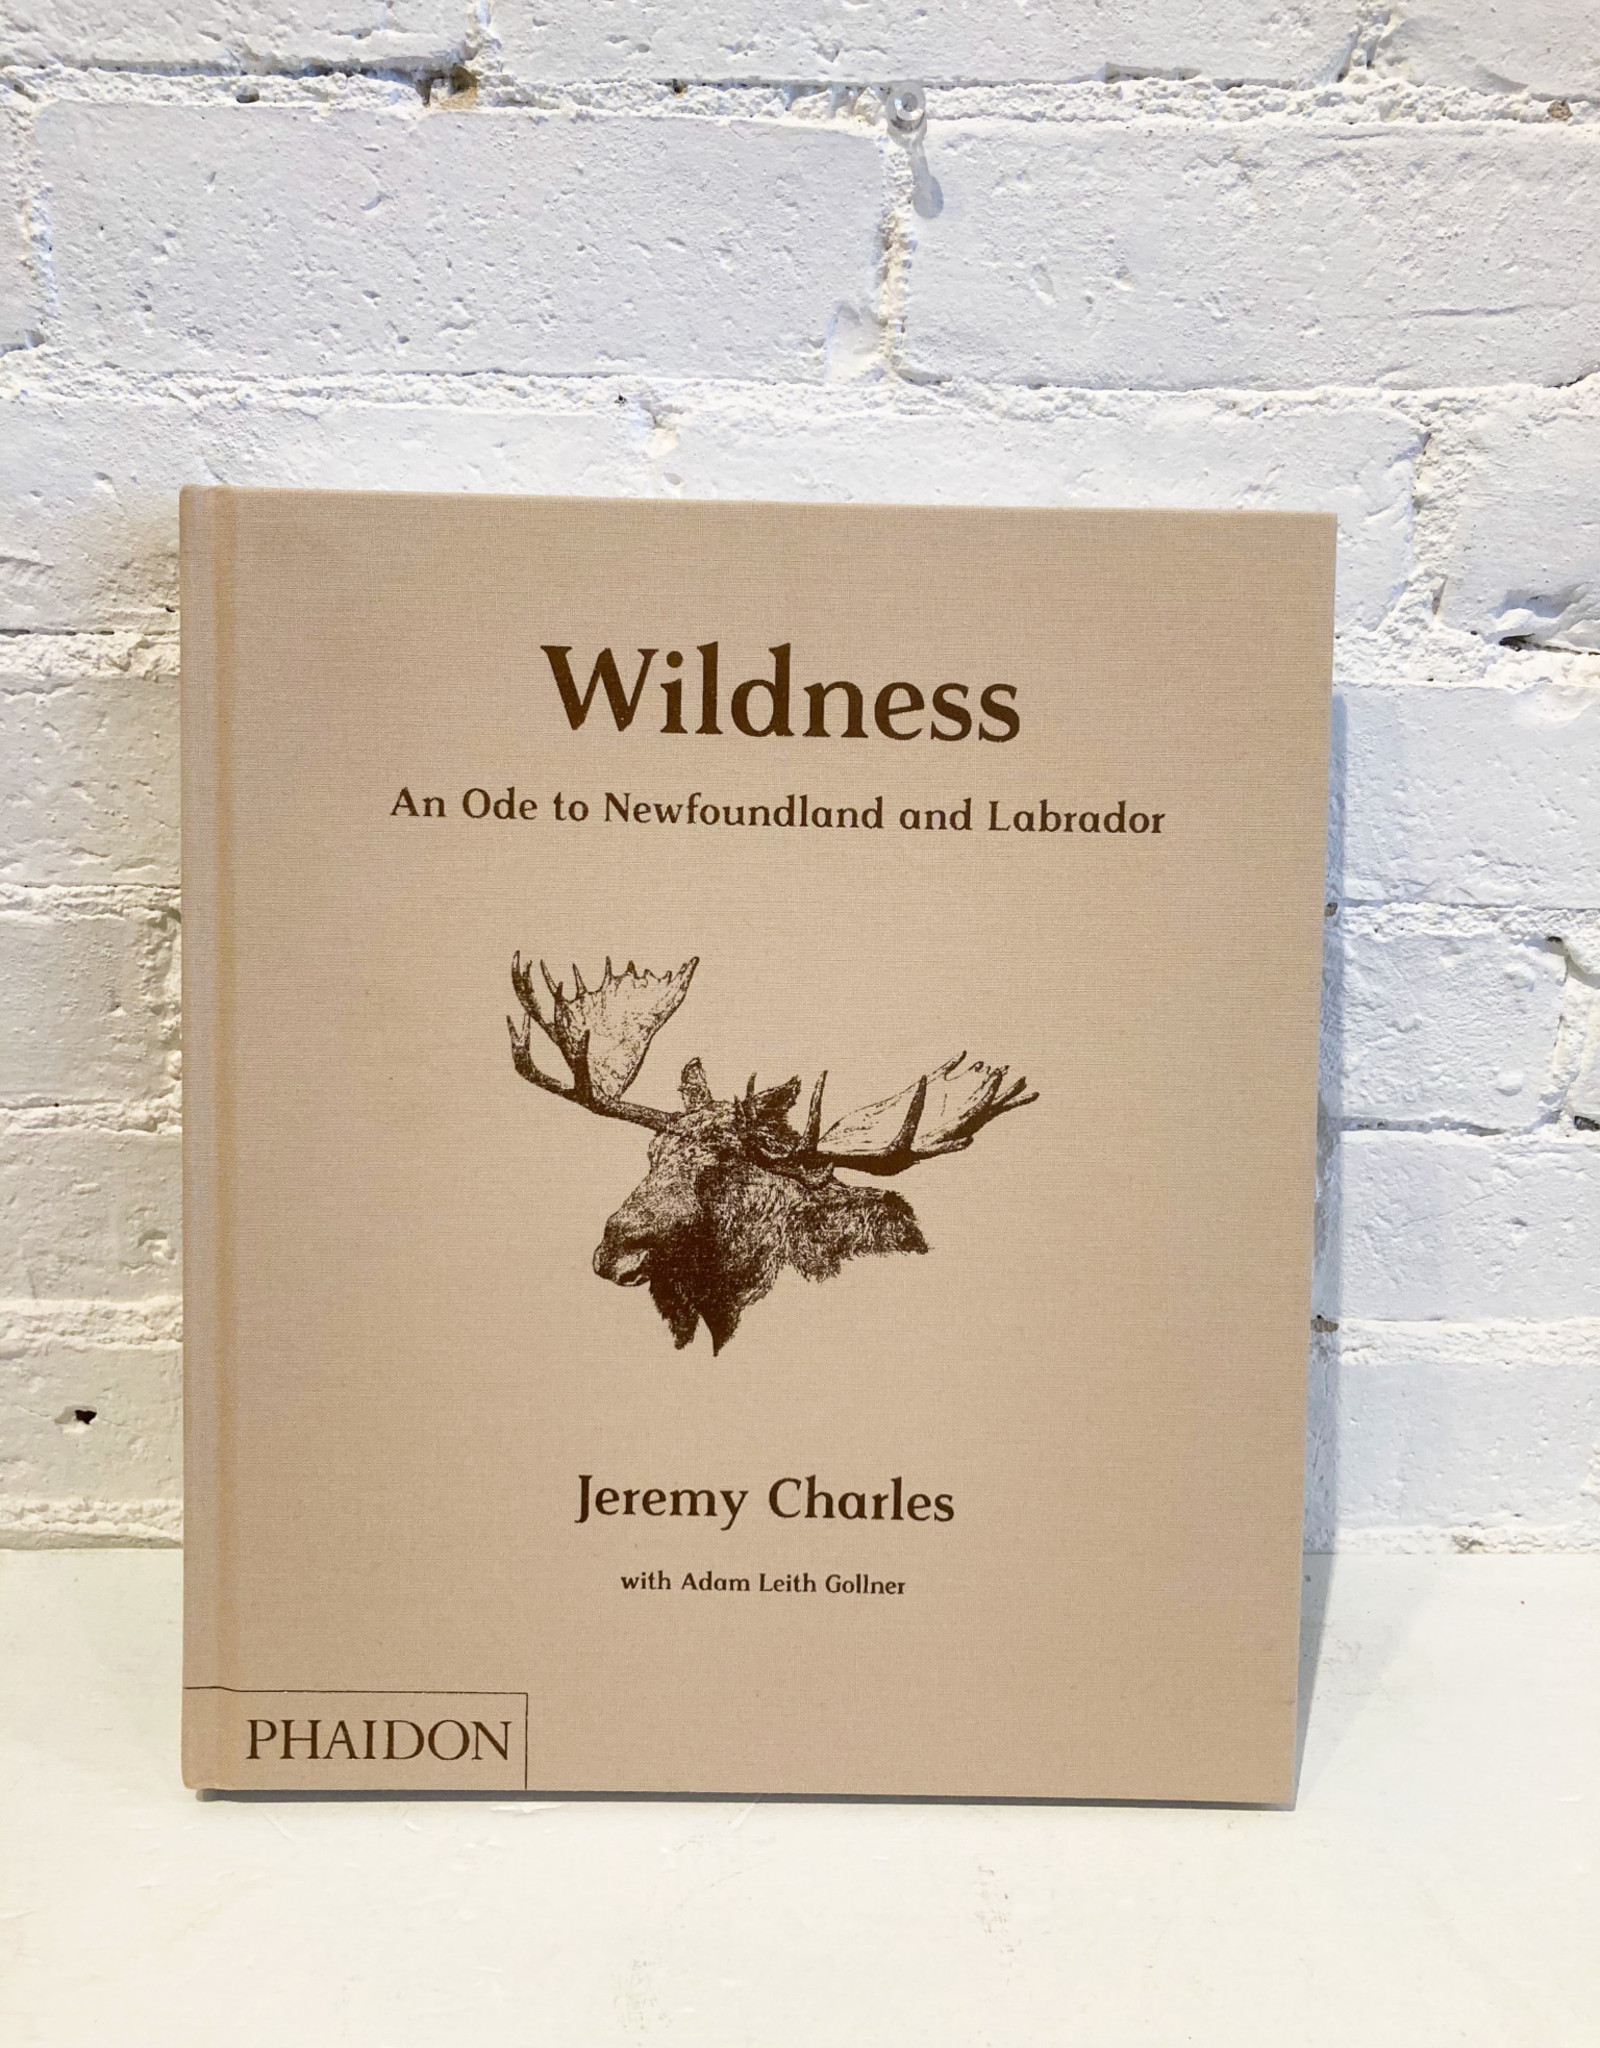 Wildness: An Ode to Newfoundland and Labrador by Jeremy Charles